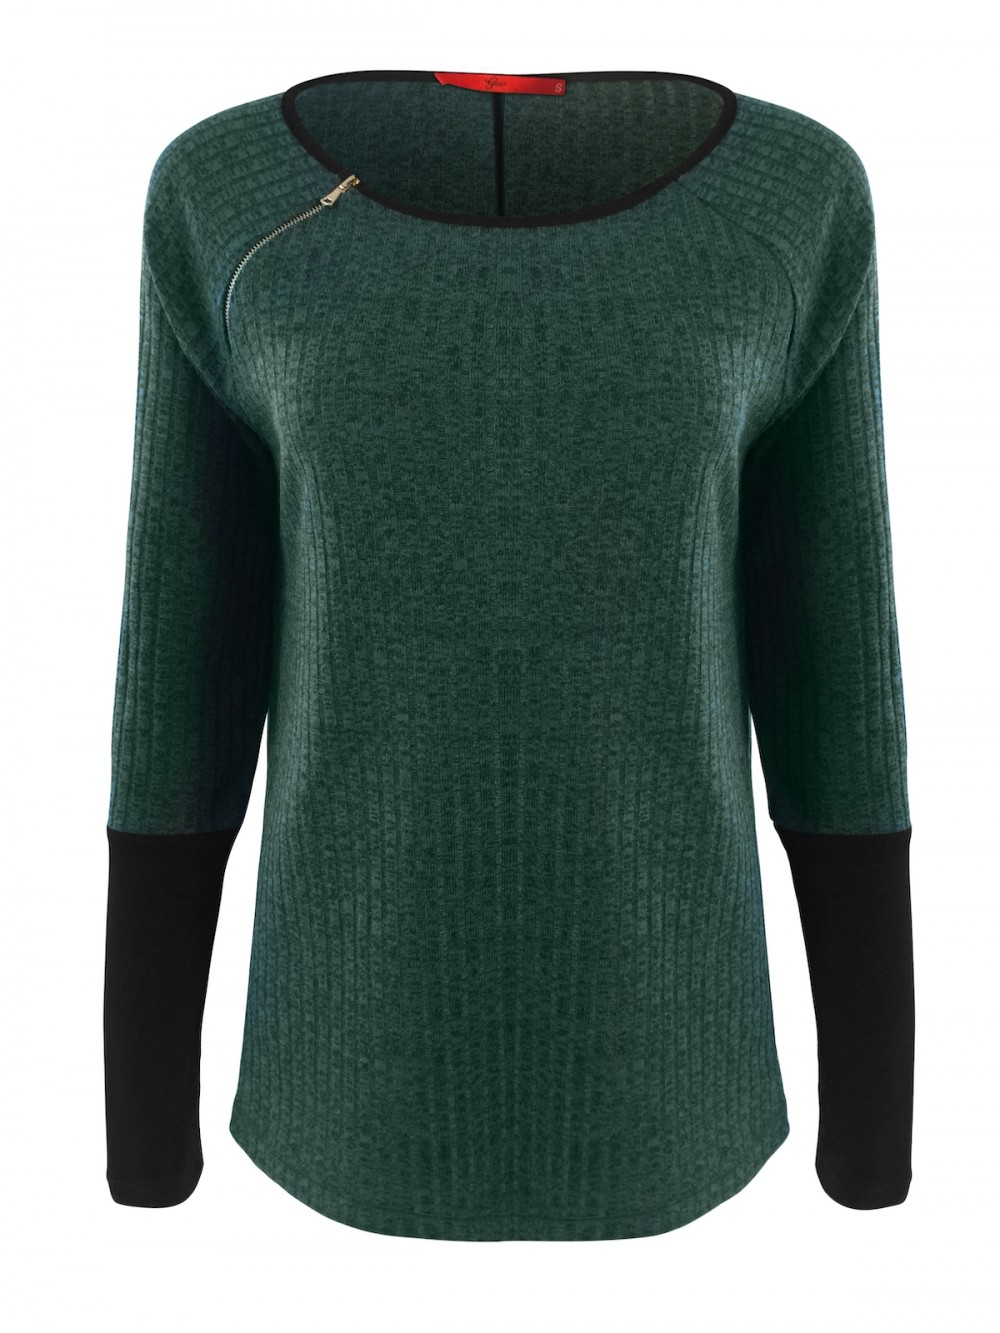 Womens Top BIA Green